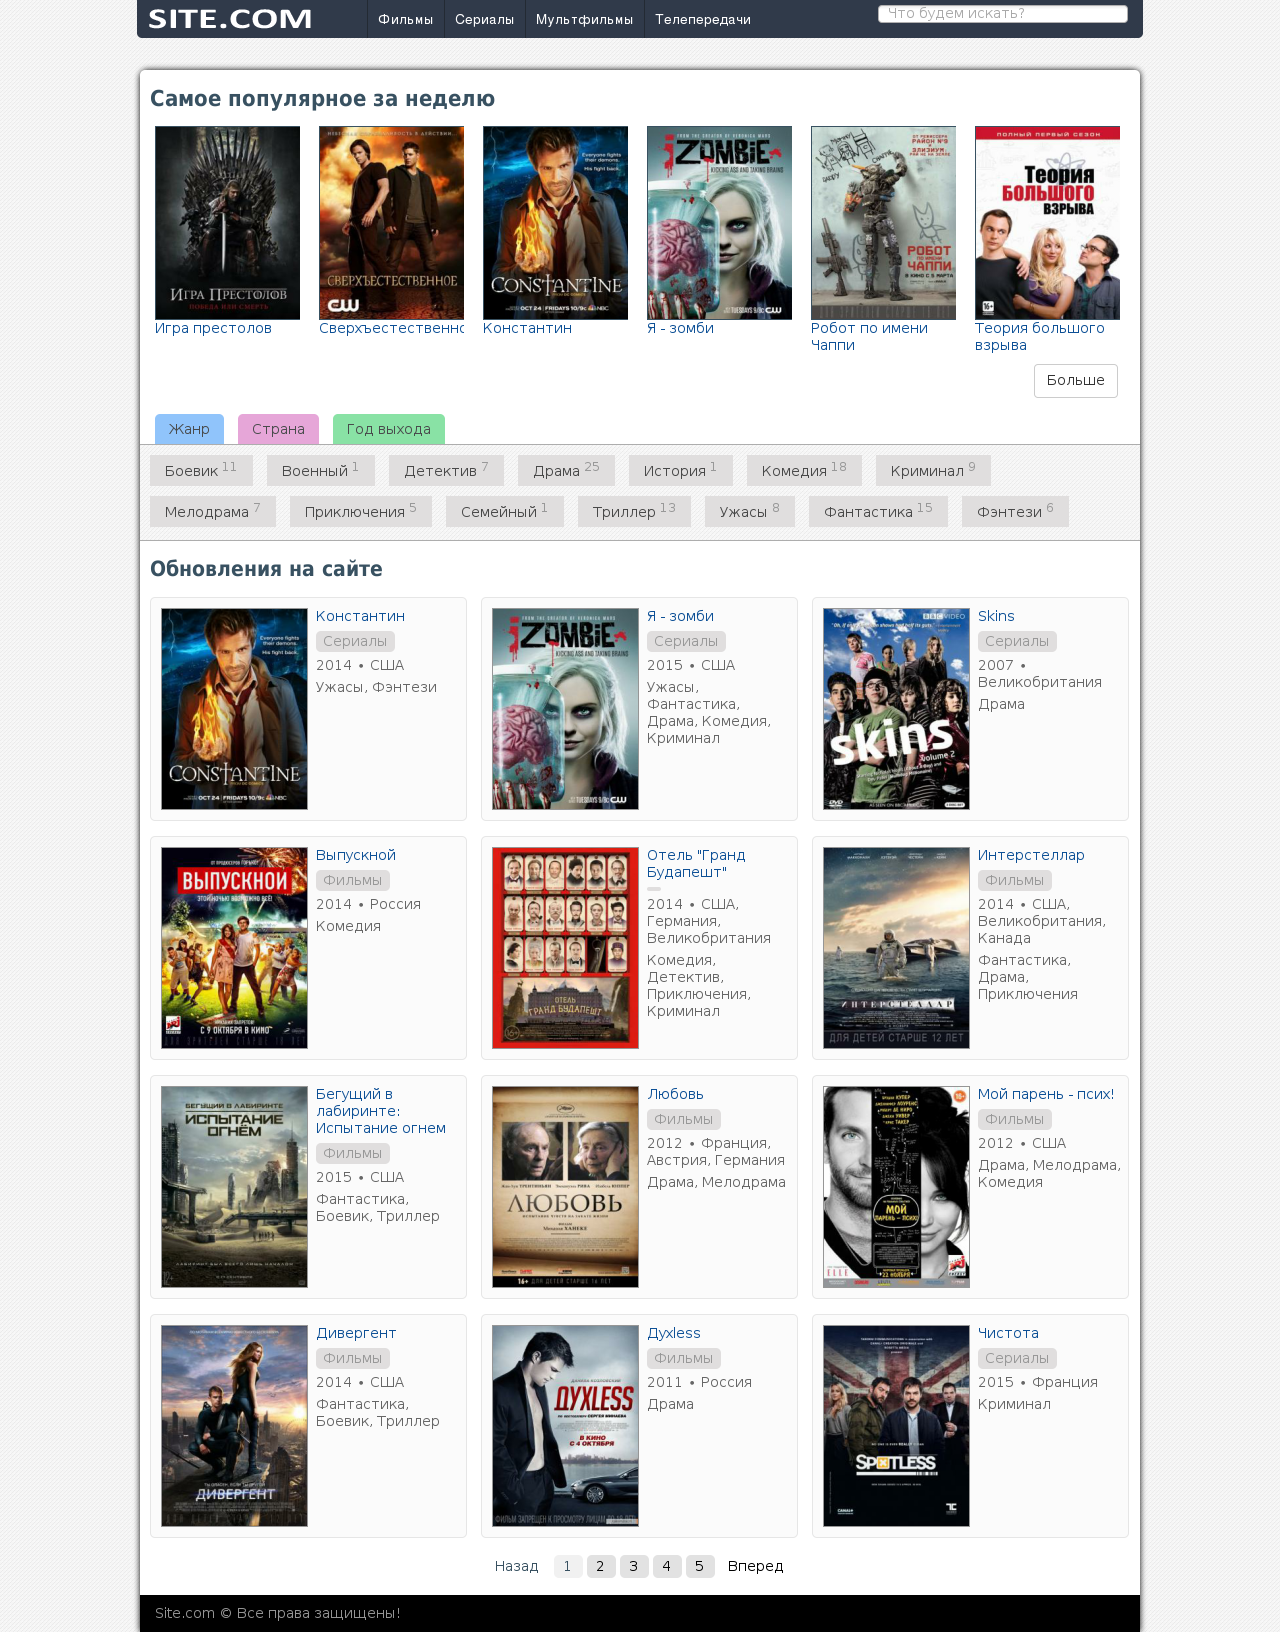 Movie DLE template at a price of 15$